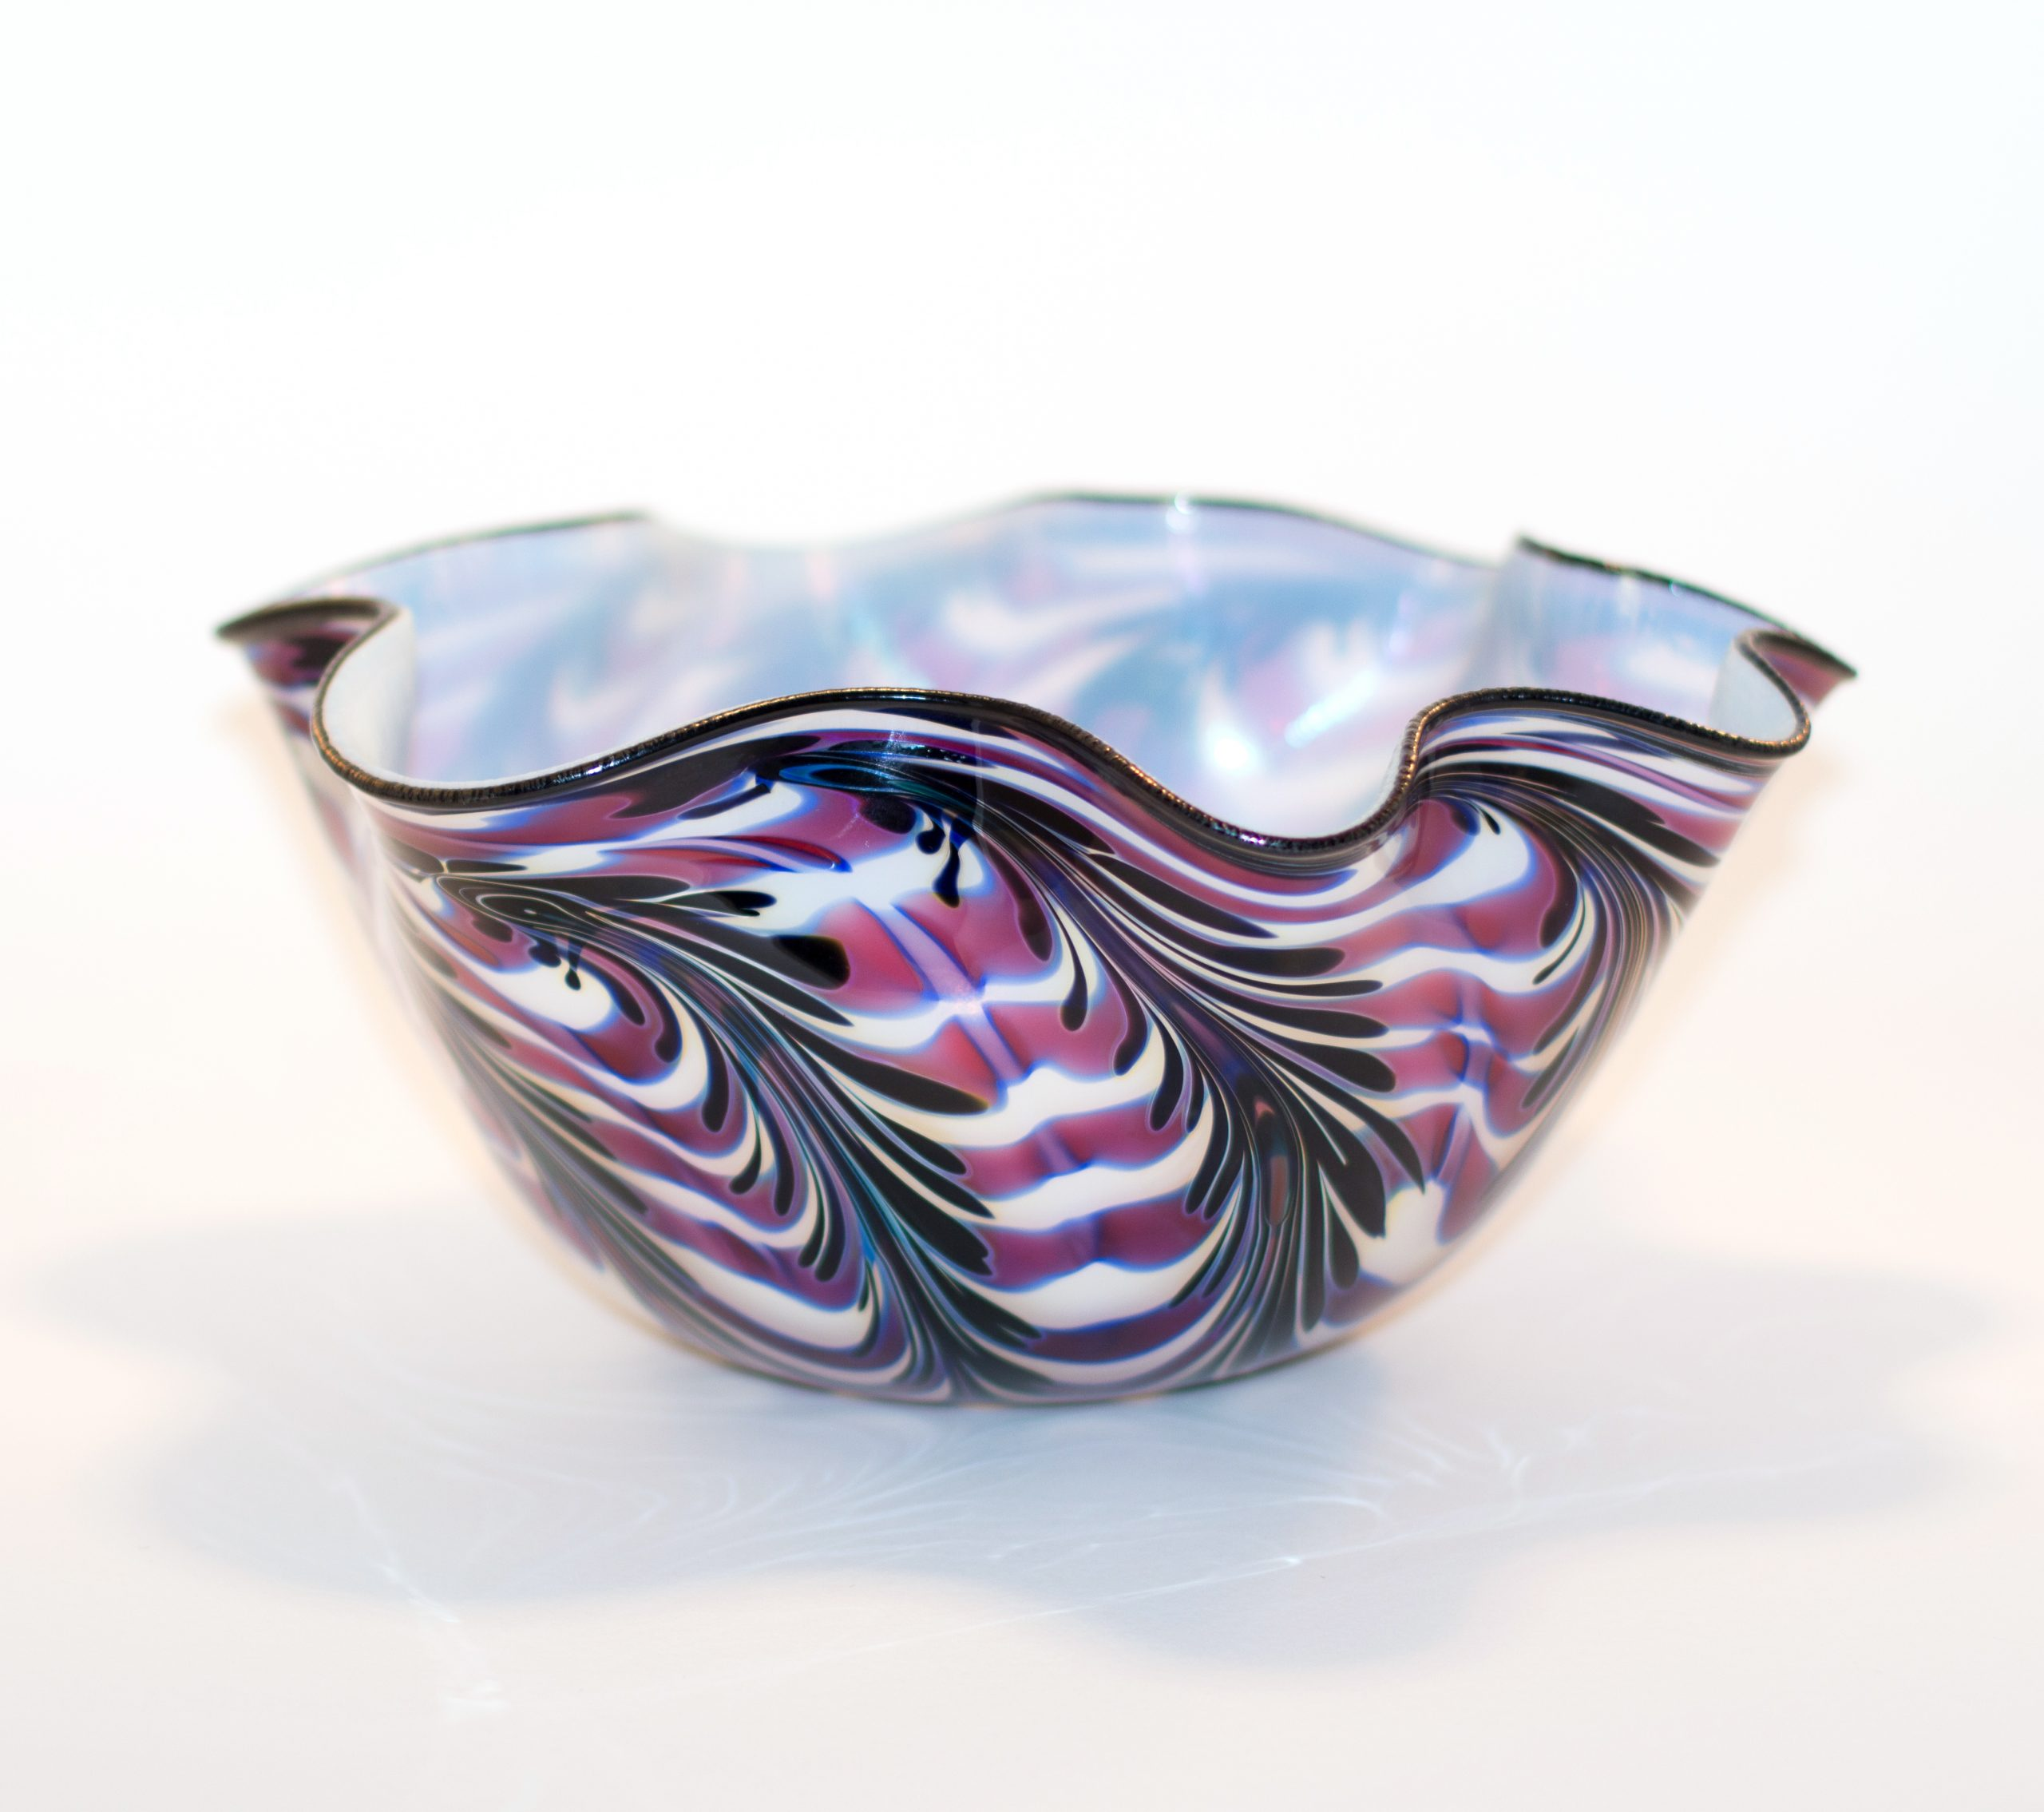 Taco Shell Bowl - Pulled Feather/White